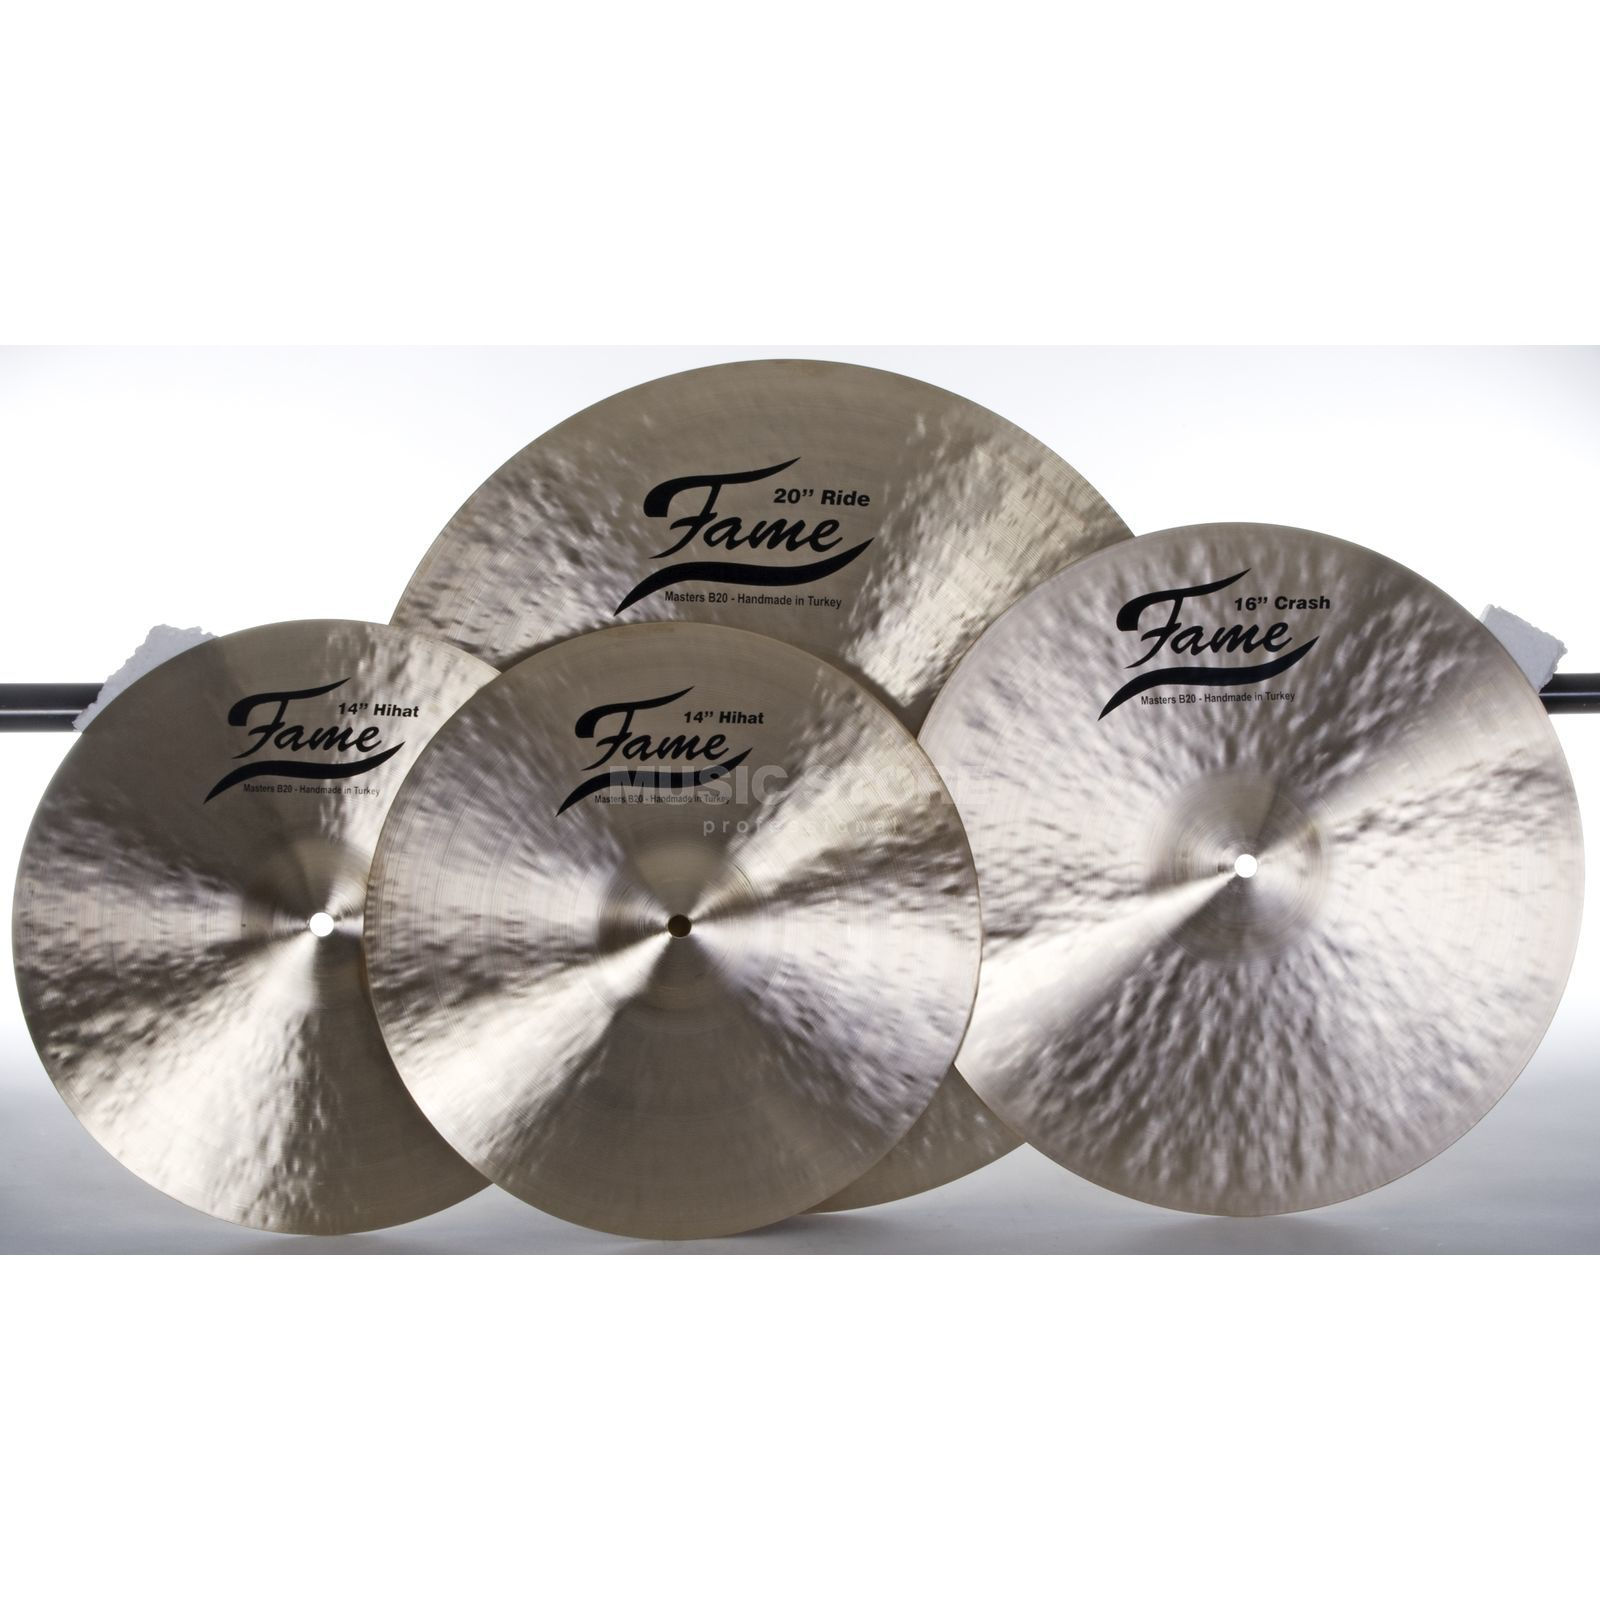 "SET FAME Masters B20 CymbalSet II Thin; 14""HH, 16""CR, 20""R Produktbillede"